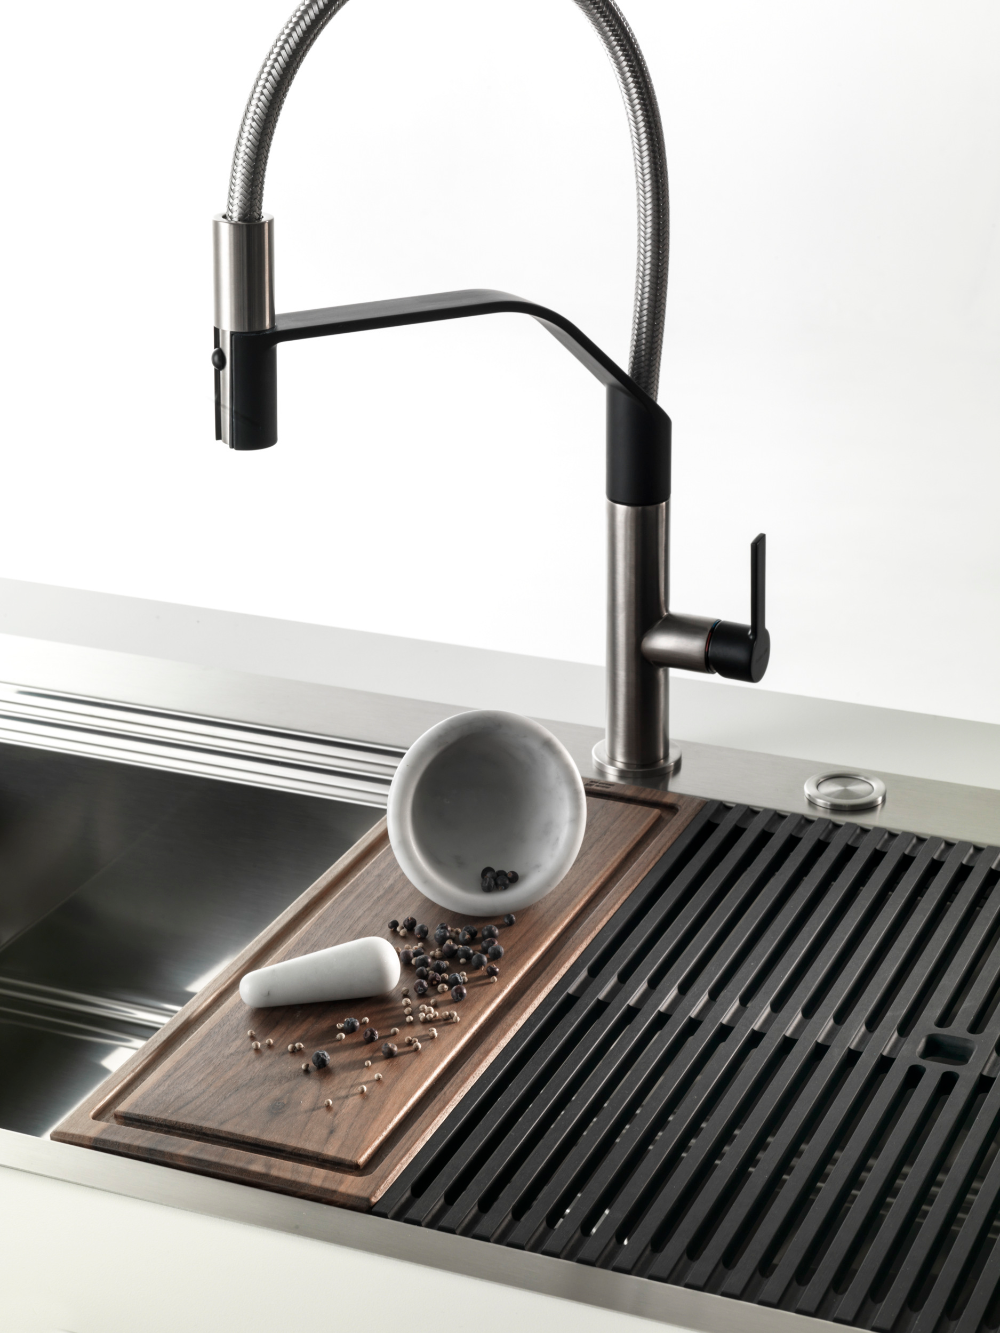 Single Flush Mounted Stainless Steel Sink With Drainer Milanello 1vdx85 1vsx85 G Ft C Br By Foster Stainless Steel Sinks Sink Stainless Steel Cabinets